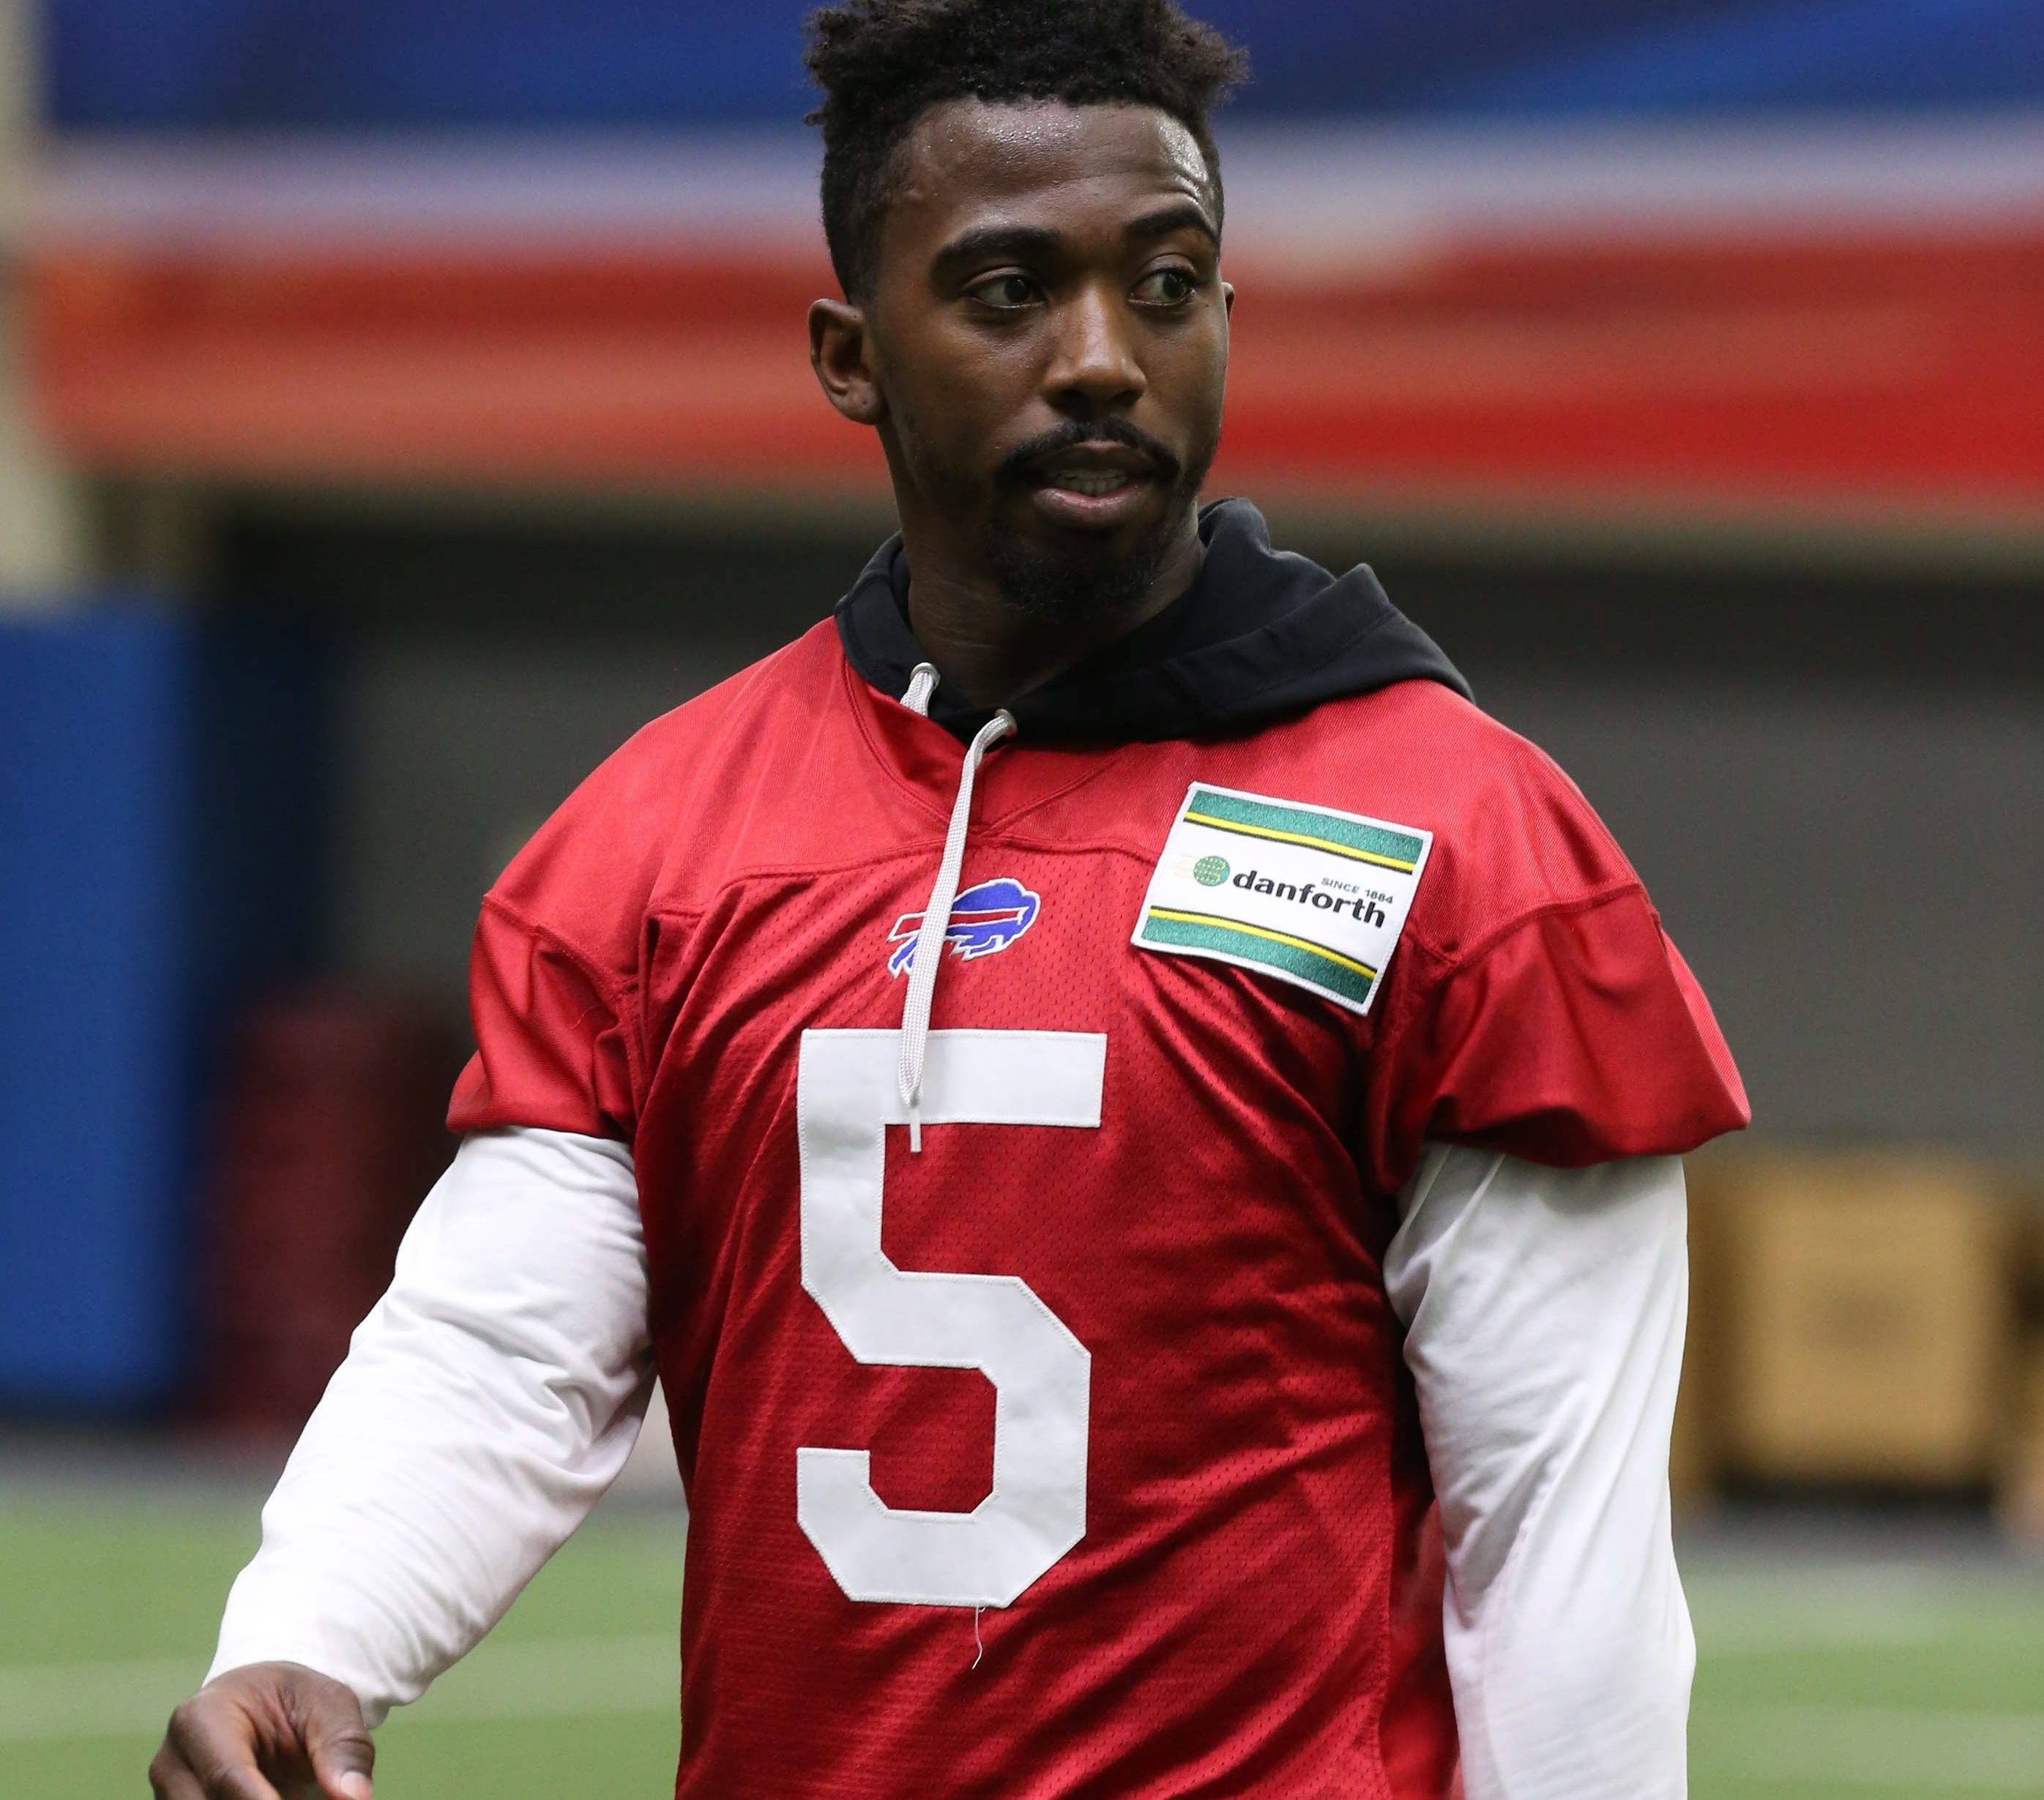 Bills running back LeSean McCoy defended his quarterback on Wednesday, saying Tyrod  Taylor is 'a hell of a player' who doesn't deserve to be benched. (James P. McCoy/Buffalo News)